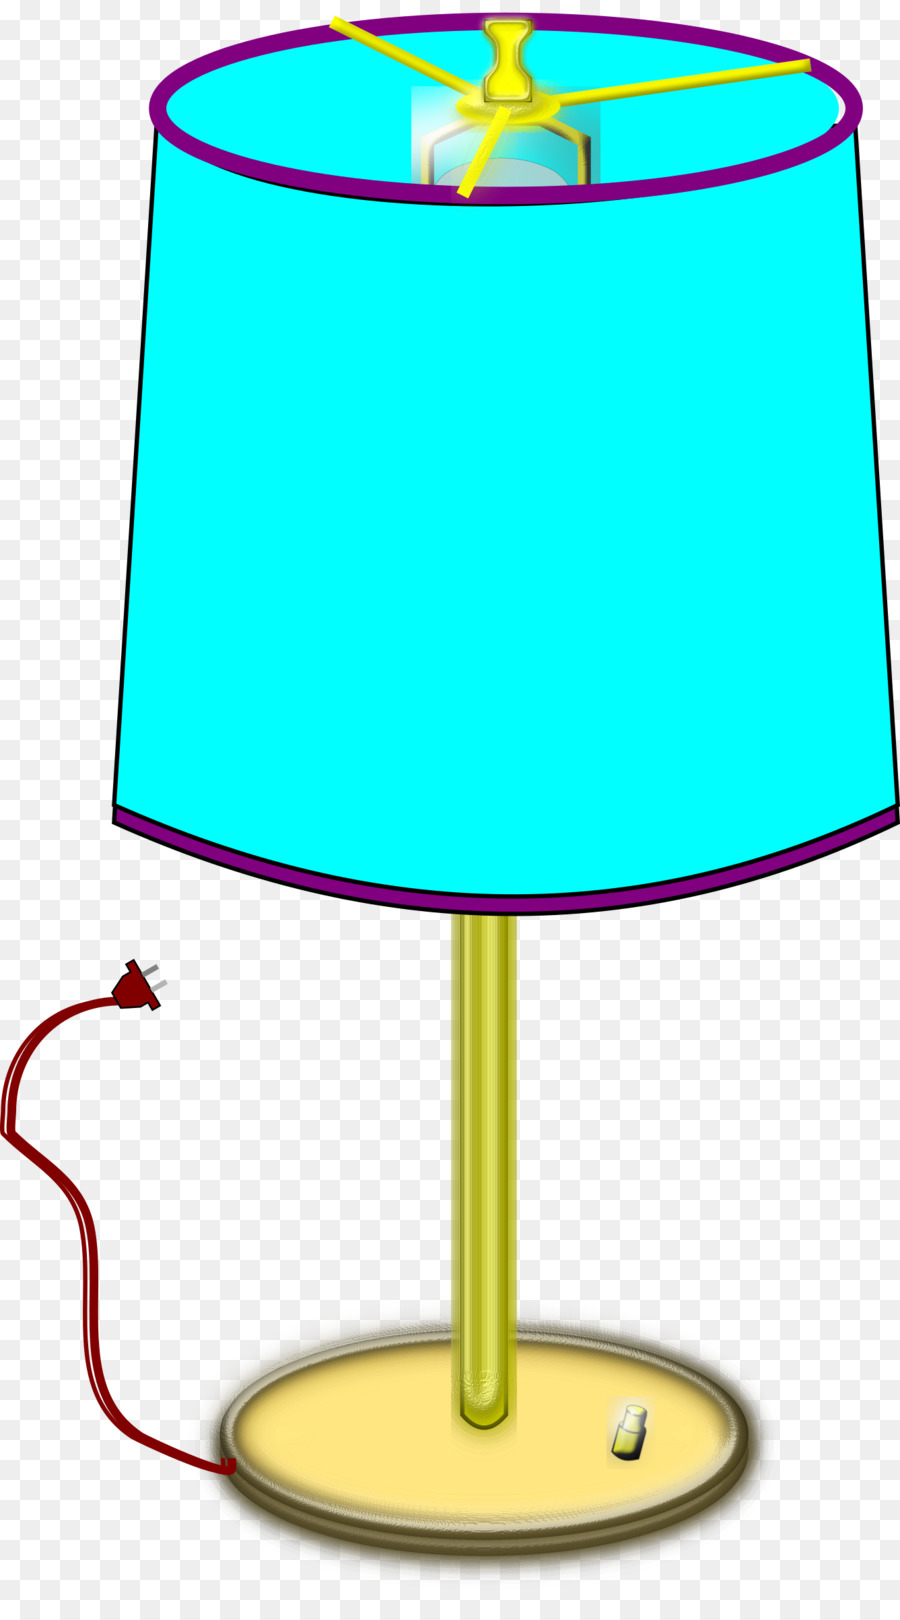 Yellow Lighttransparent png image & clipart free download.